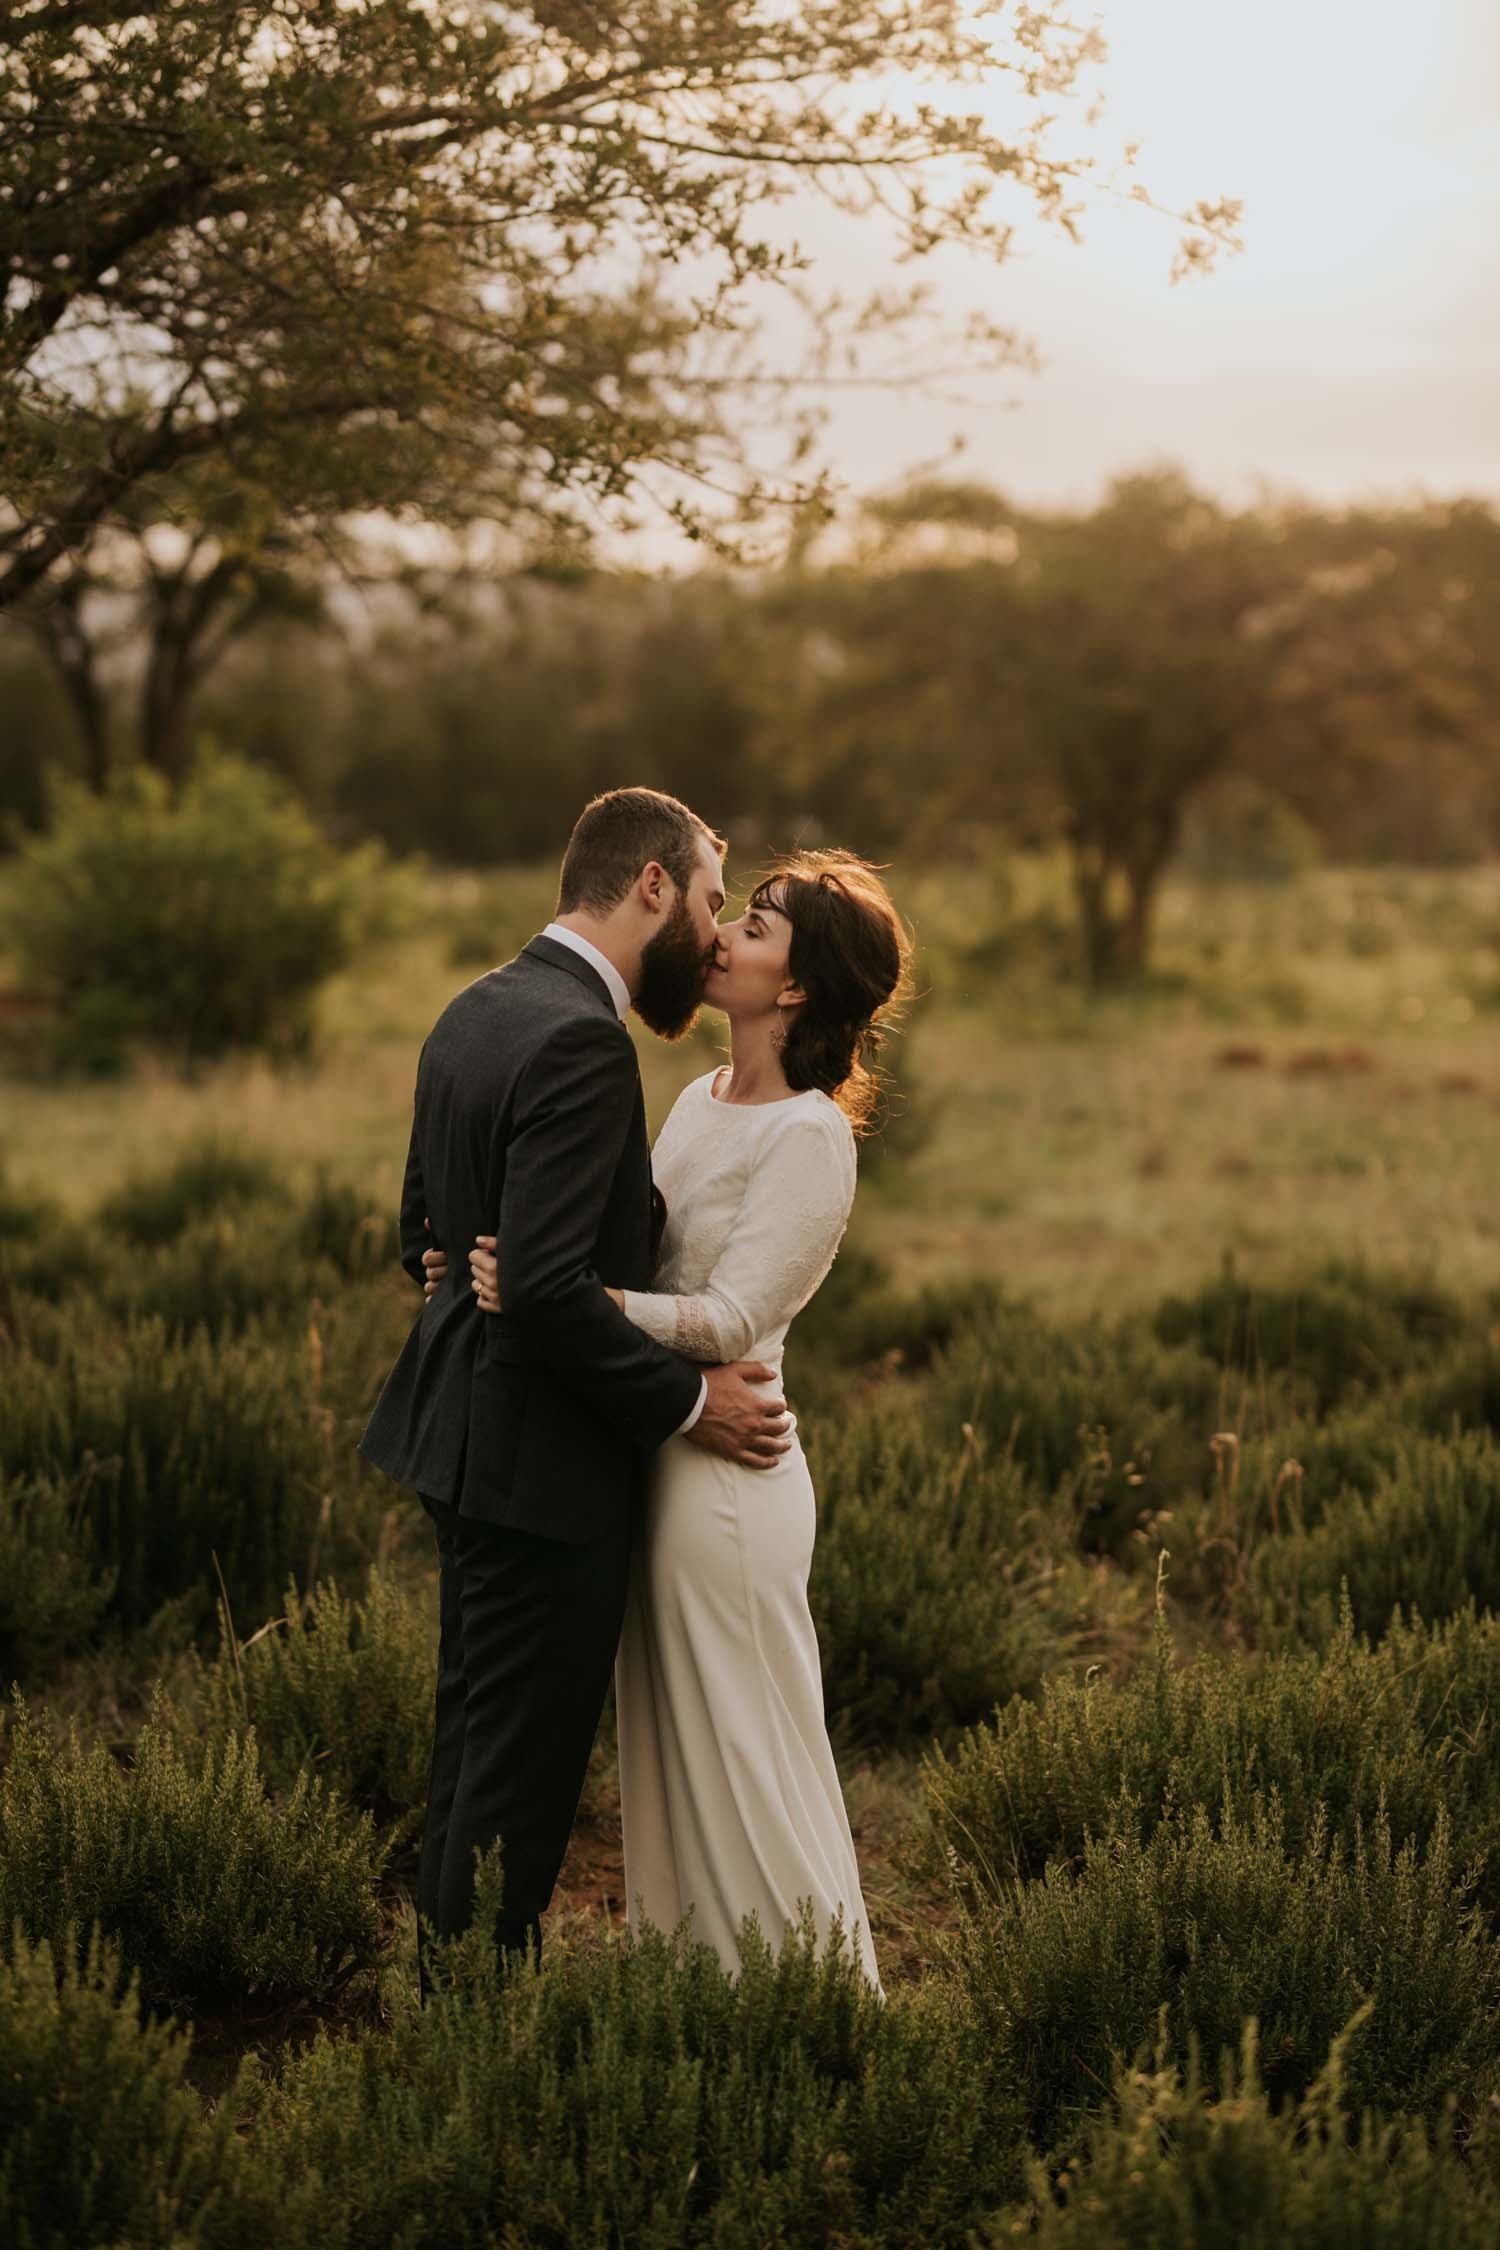 Newlyweds kiss under a tree in a field with golden light shining behind them at The Greenhouse Cafe at Rosemary Hill Farm in Pretoria